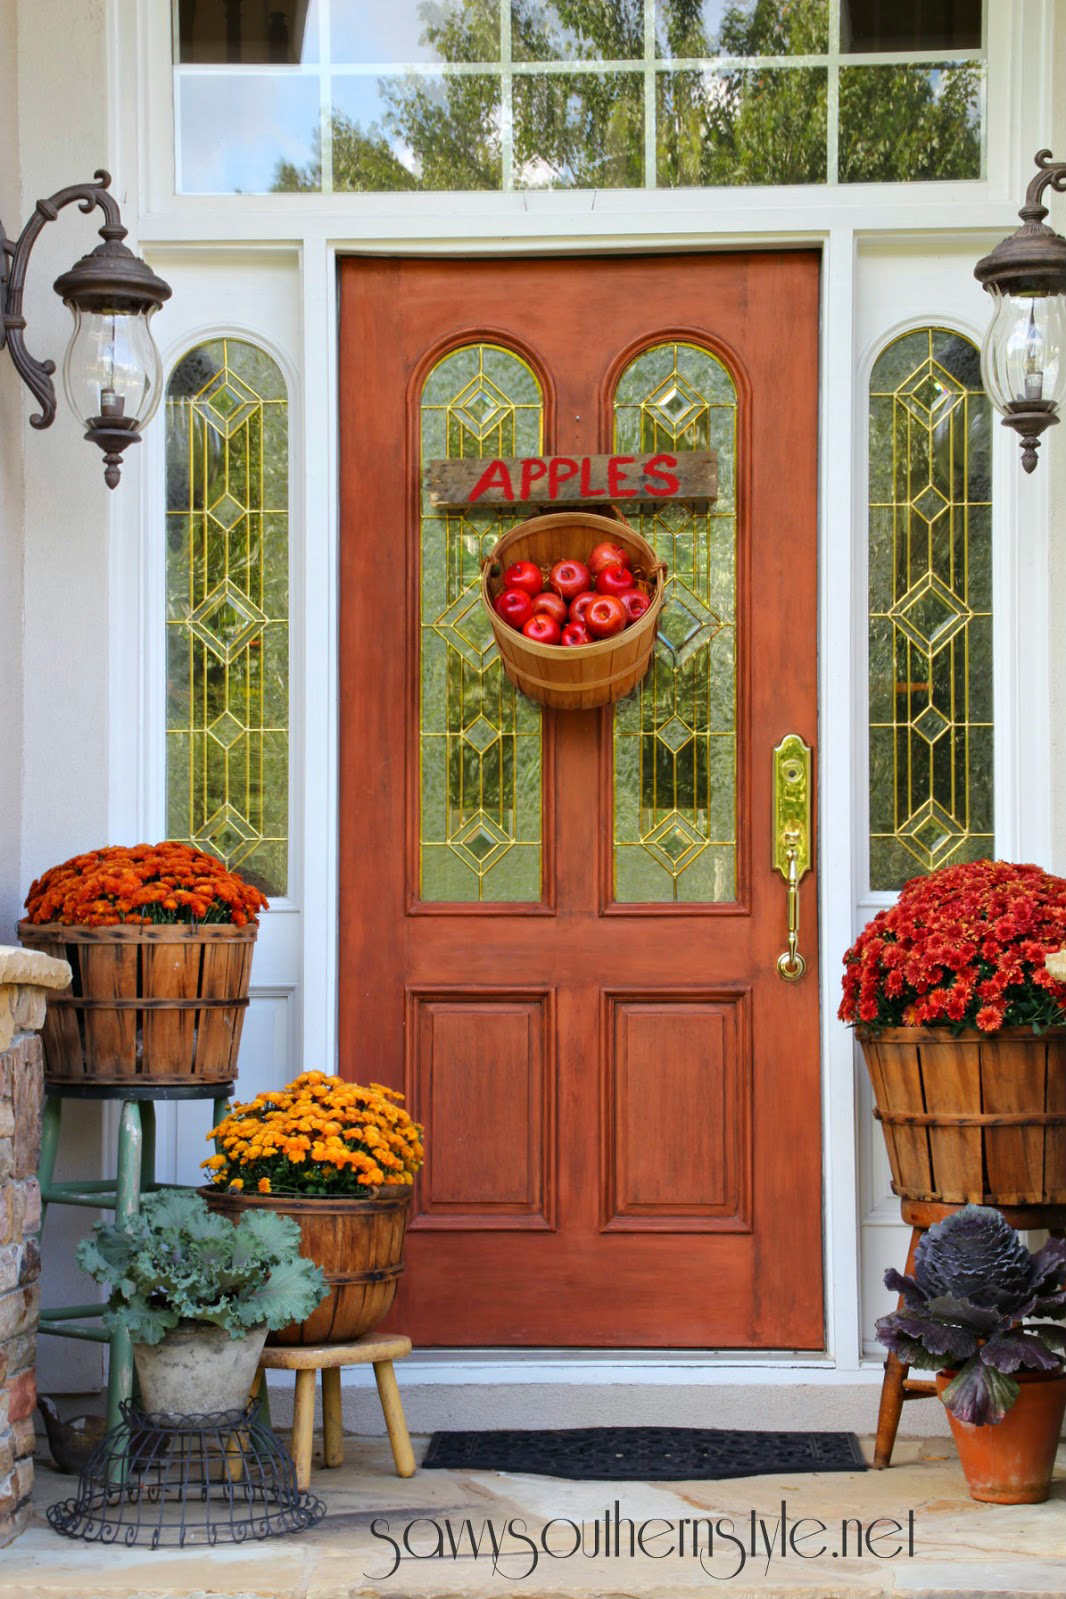 & 37 Fall Porch Decorating Ideas - Ways to Decorate Your Porch for Fall Pezcame.Com